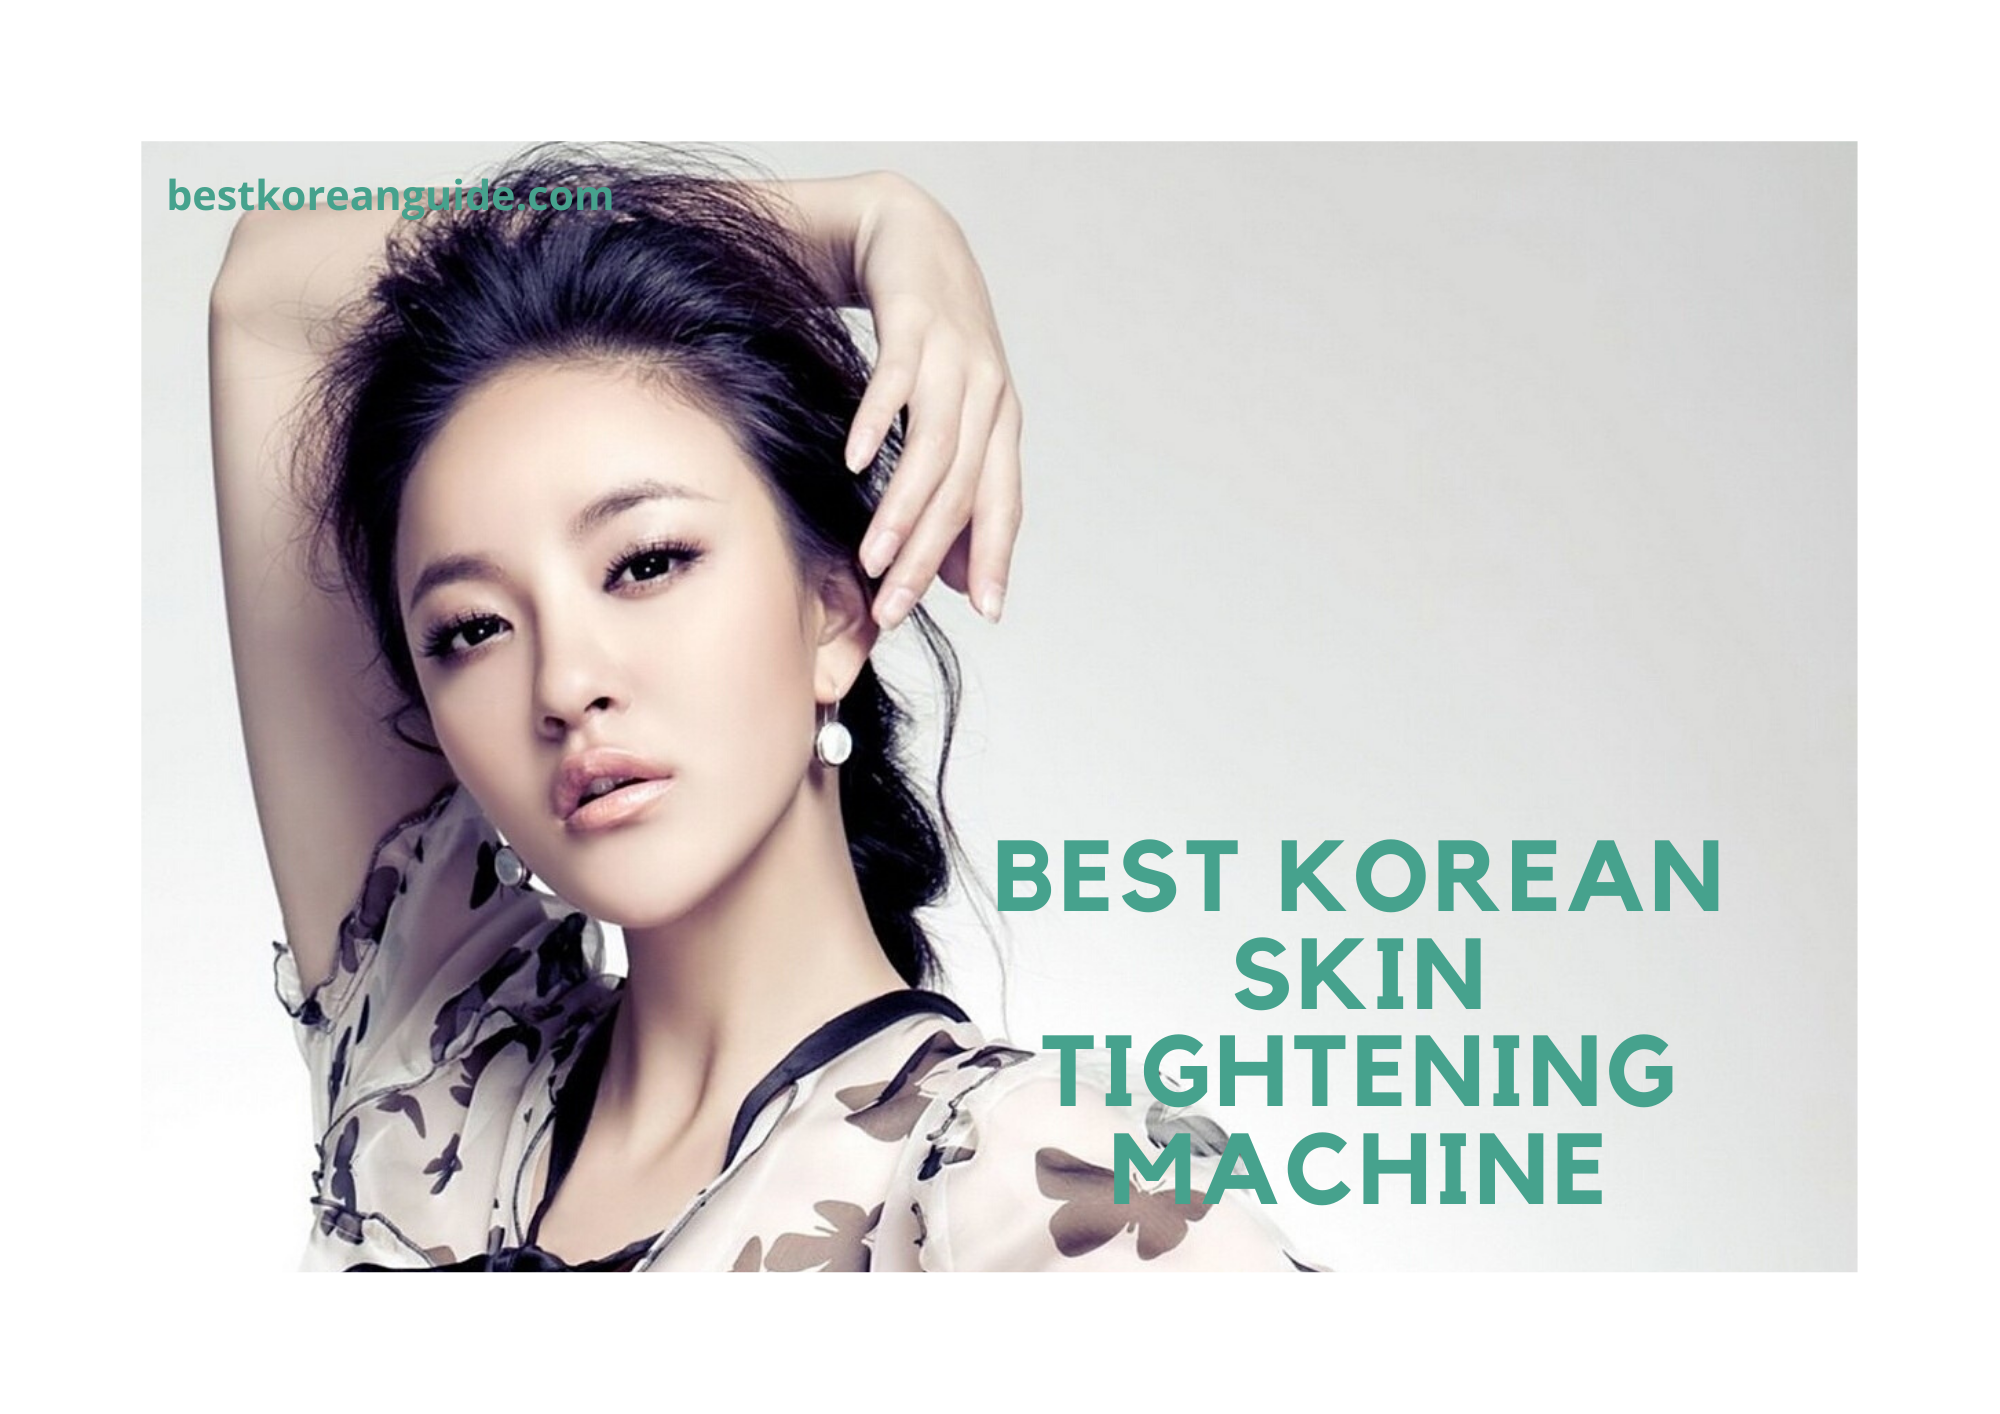 BEST KOREAN SKIN TIGHTENING MACHINE